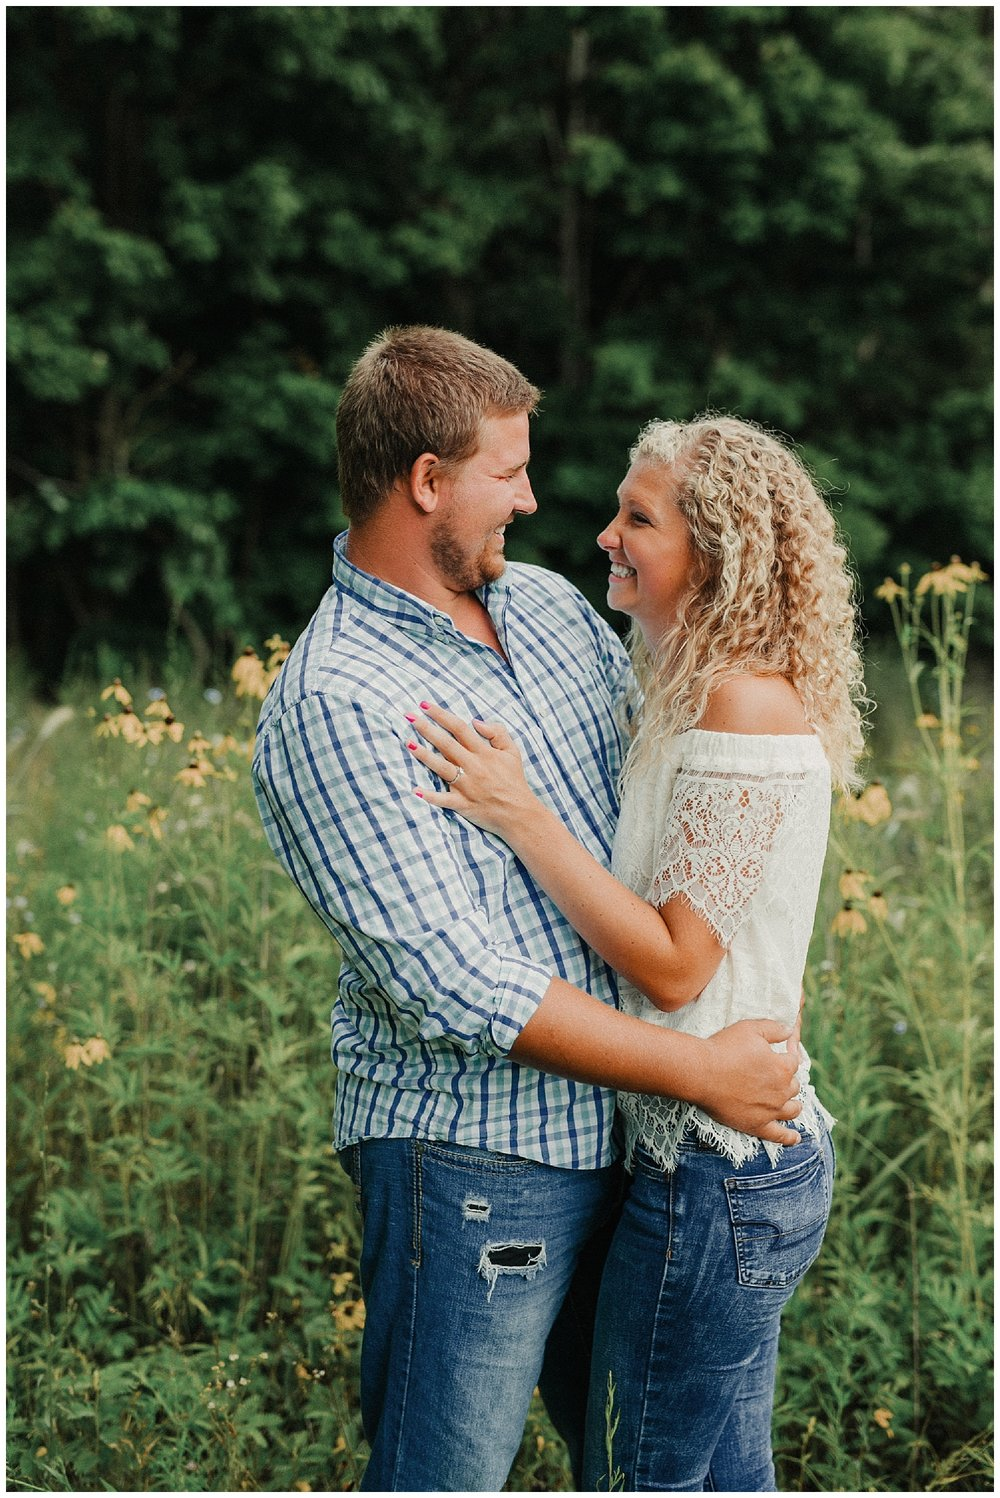 lindybeth photography - engagement pictures - nikki dayton-164.jpg